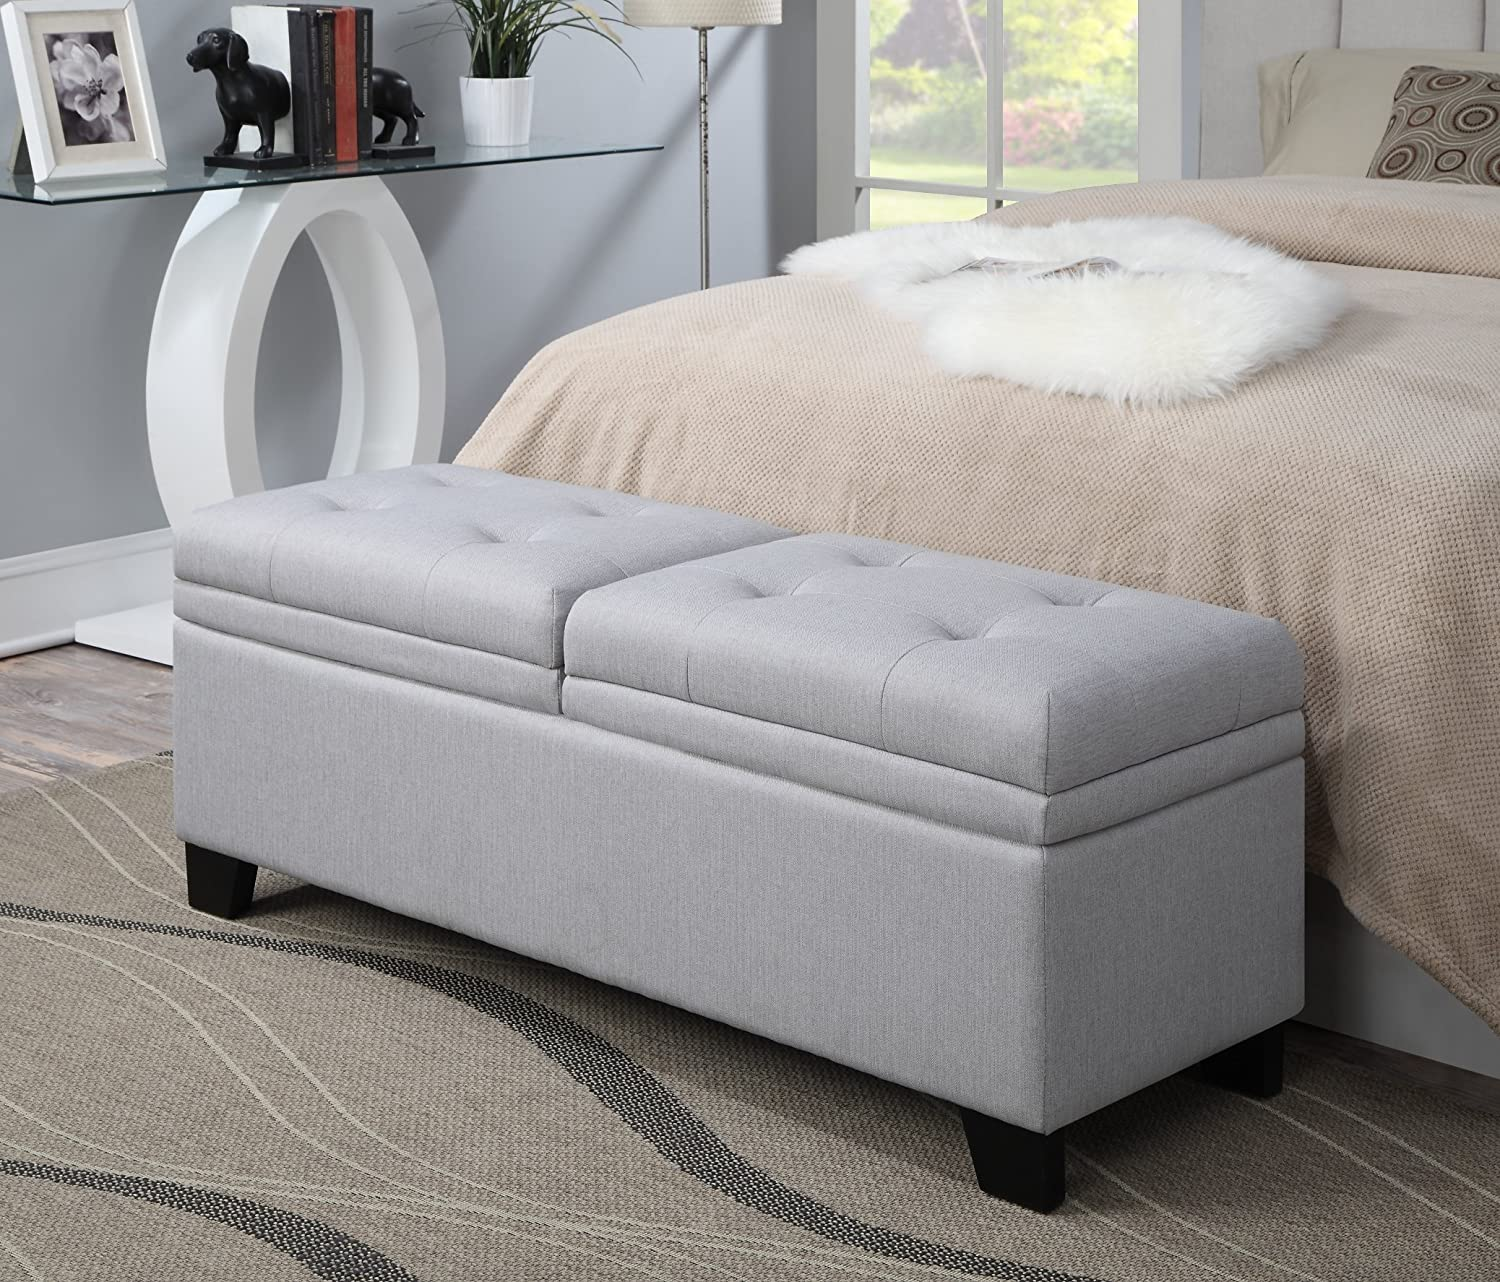 Amazon.com: Pulaski Curtis Storage Upholstered Bed Bench, Trespass Marmor:  Kitchen U0026 Dining